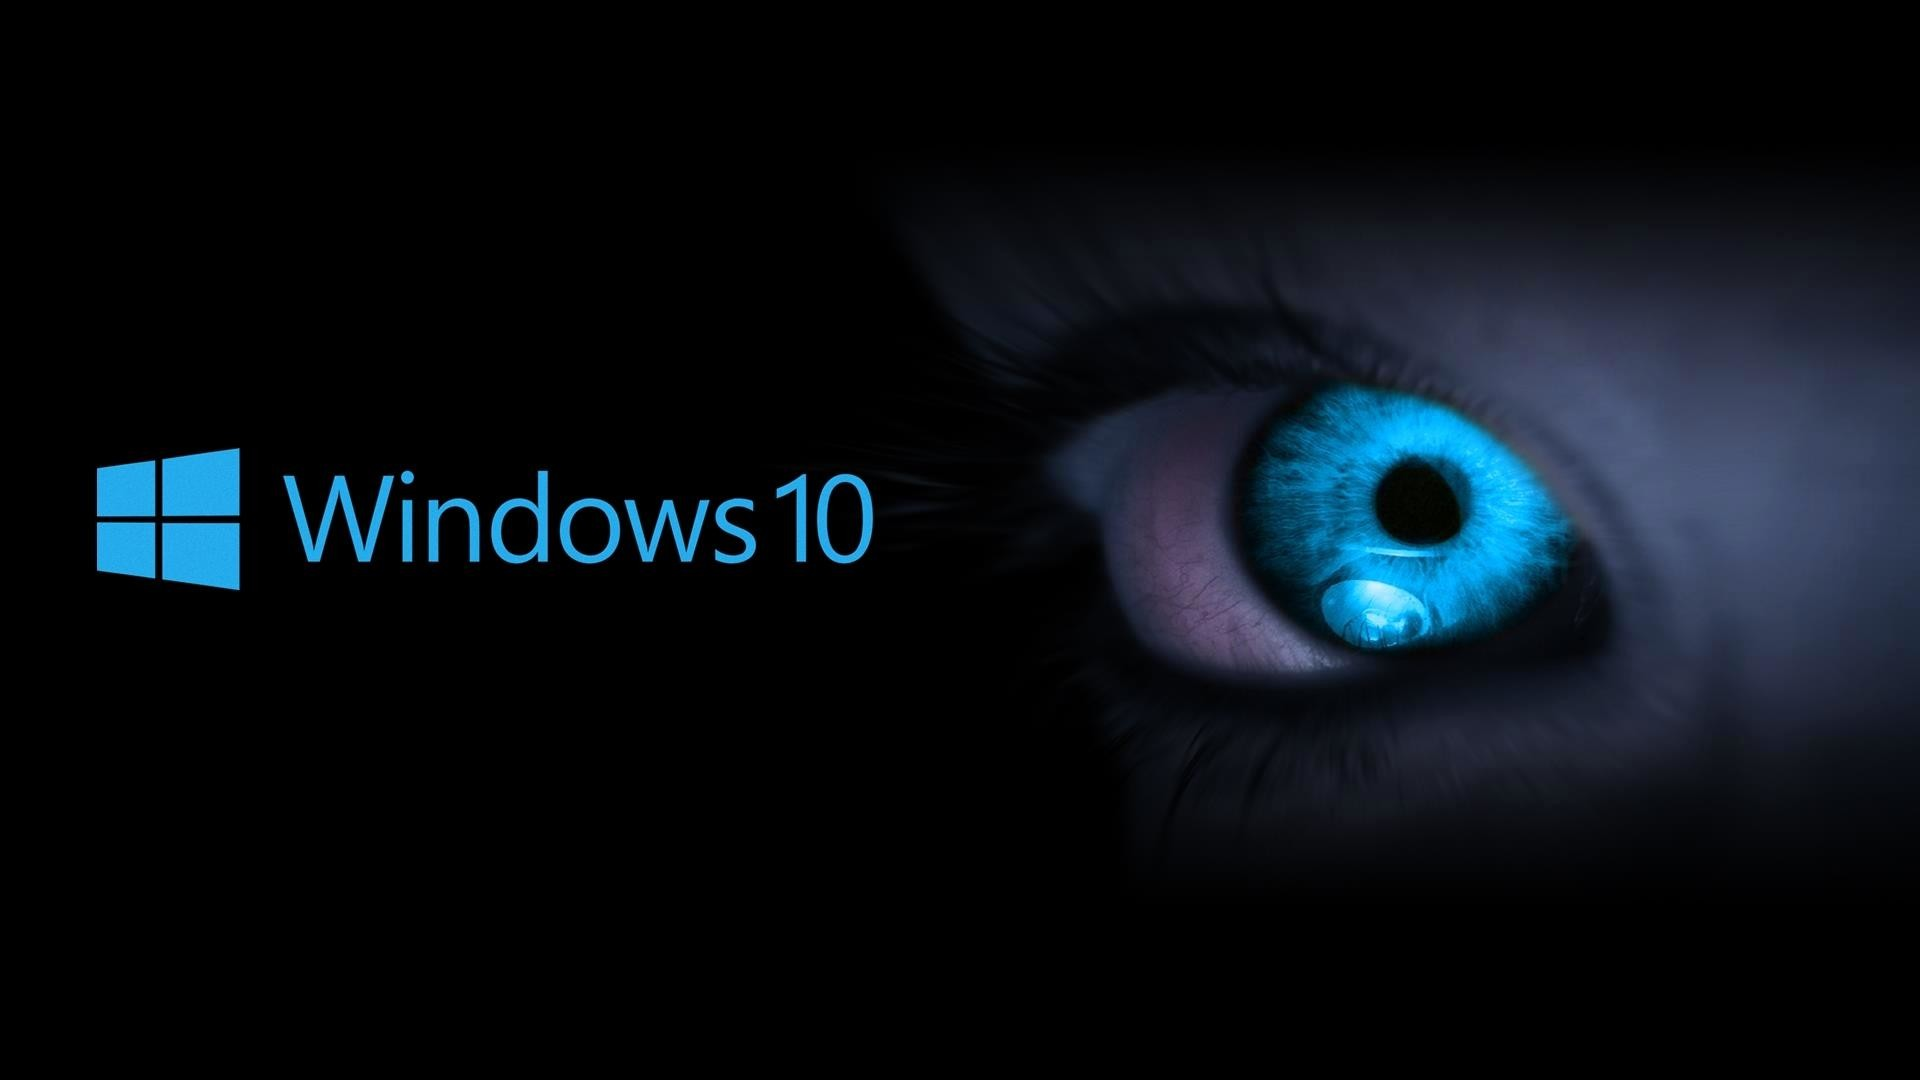 1920x1080 Download Windows 10 Cortana Wallpaper - Windows 10 Wallpapers